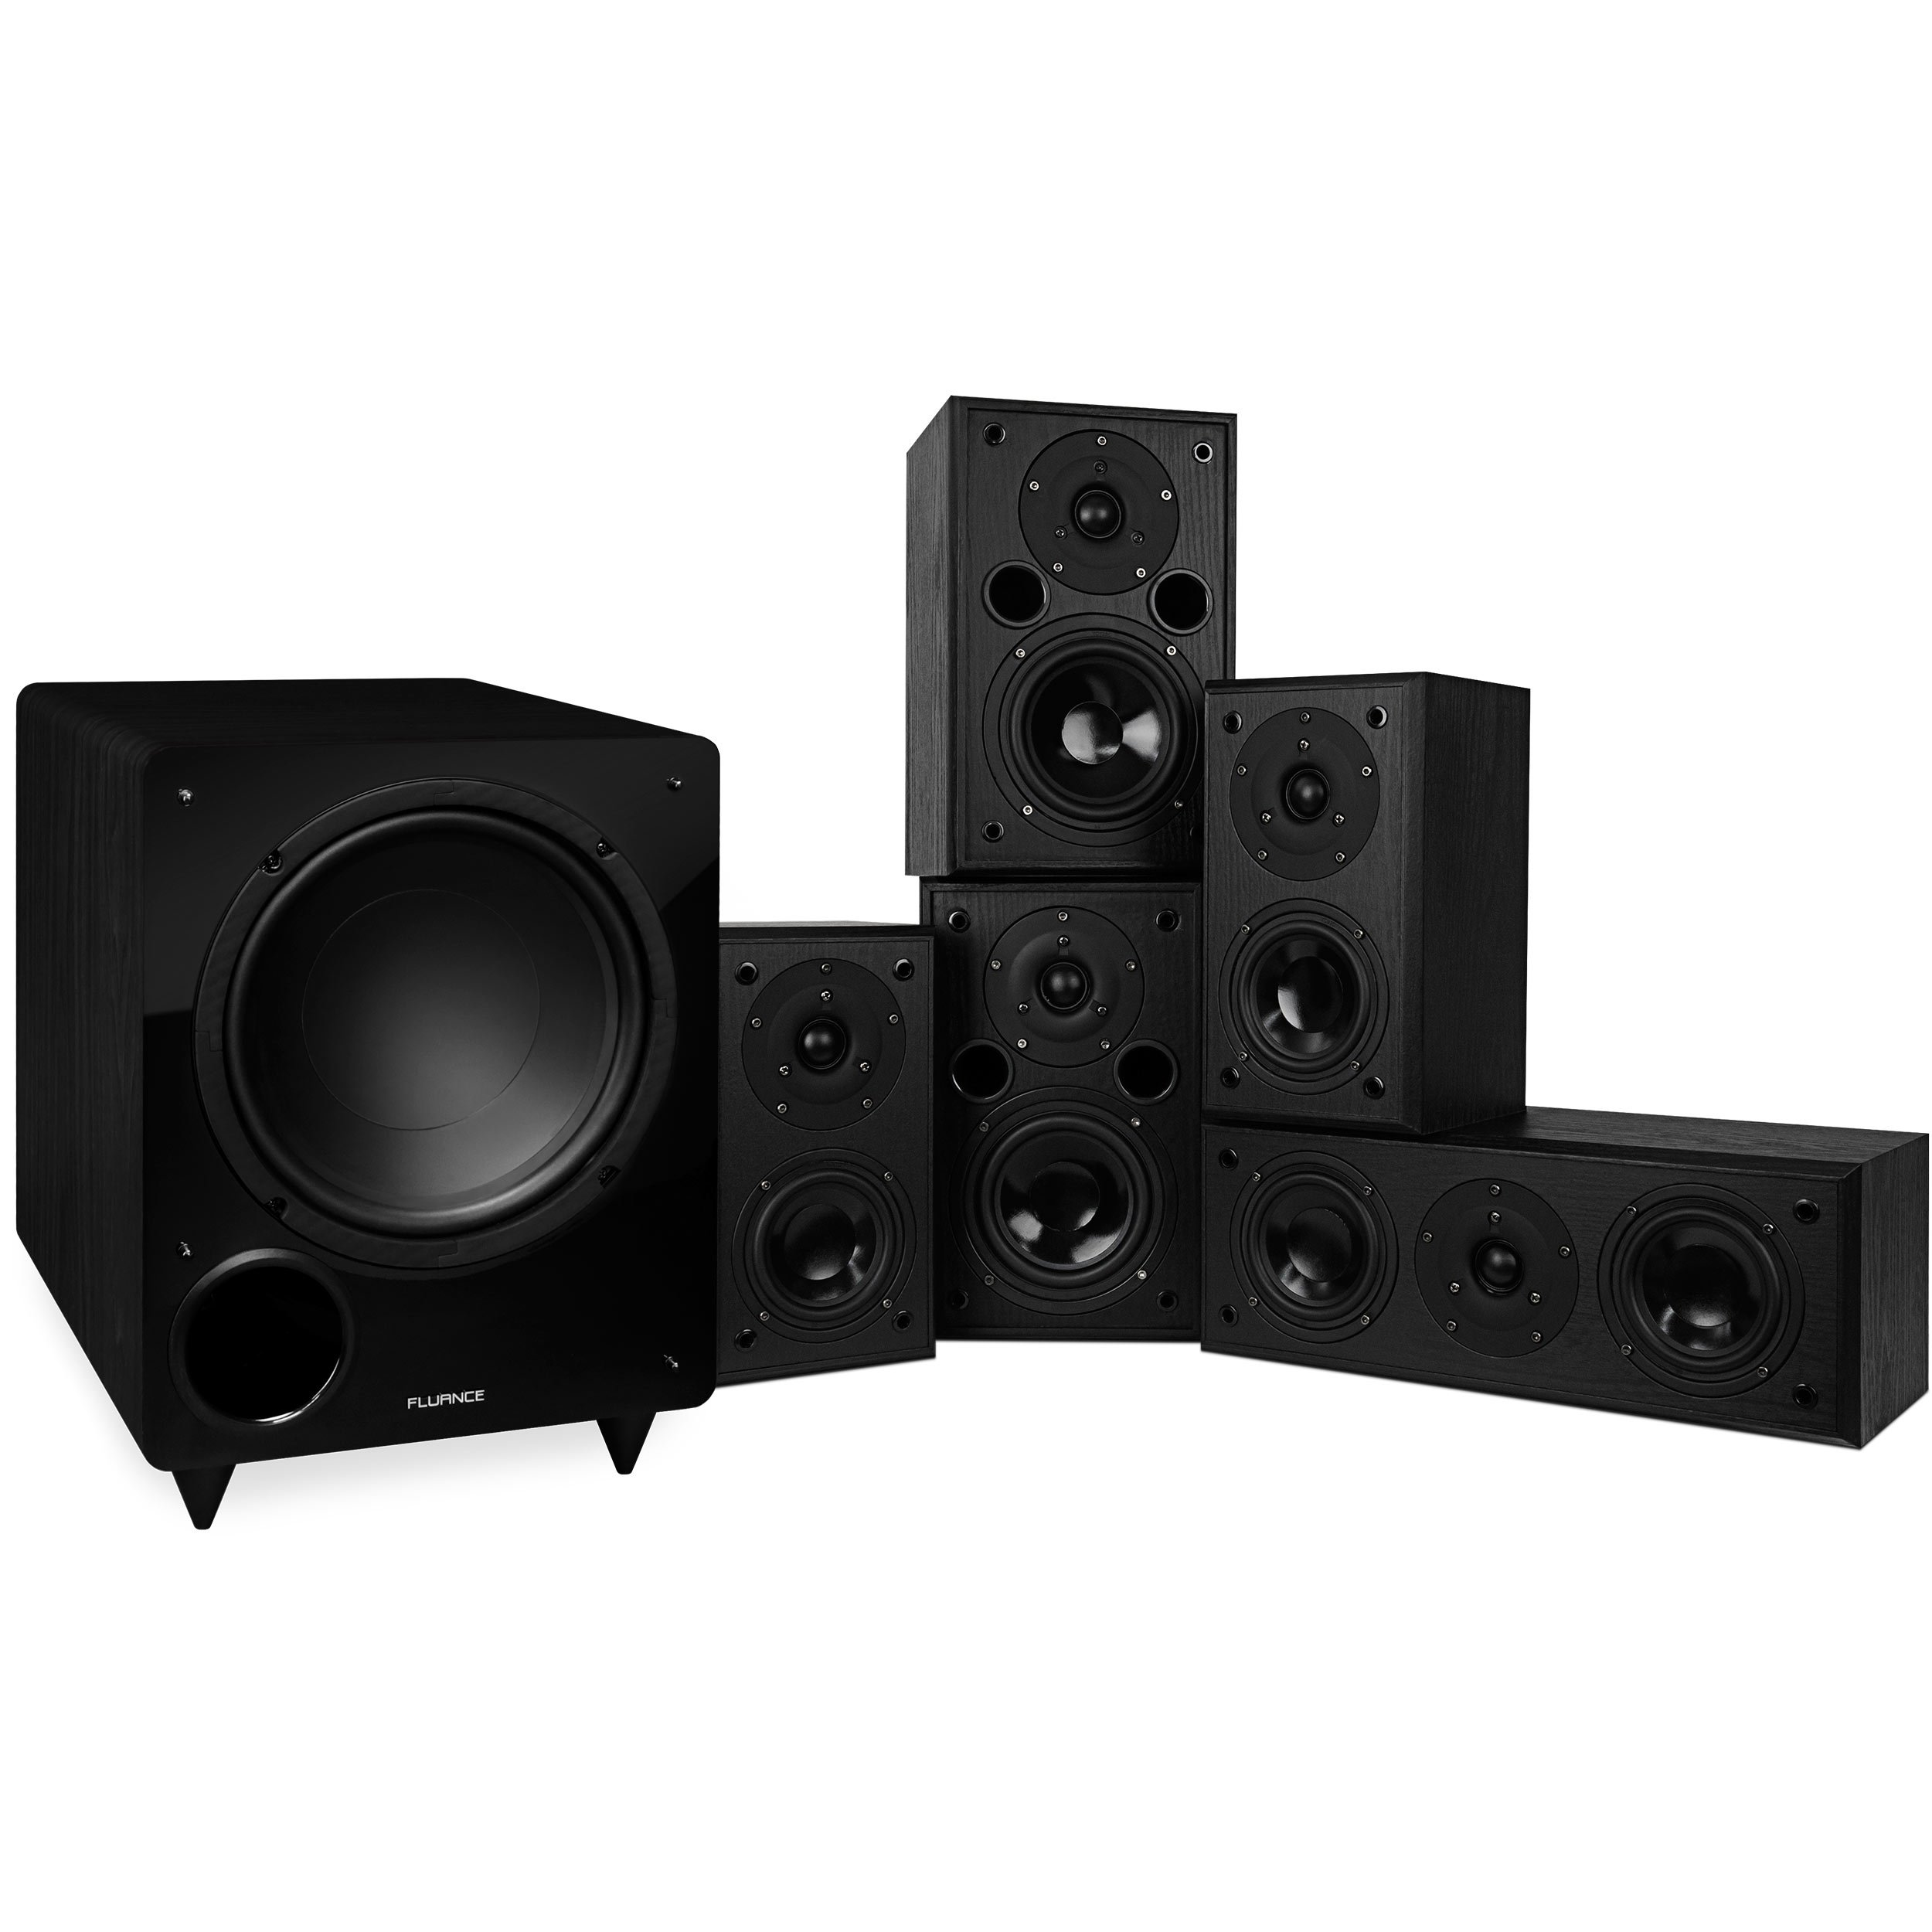 Fluance Classic Series Surround Sound Home Theater 5.1 Channel Speaker System including Two-way Bookshelf, Center, Rear Speakers, and DB10 Subwoofer – Black Ash (AV51BC)